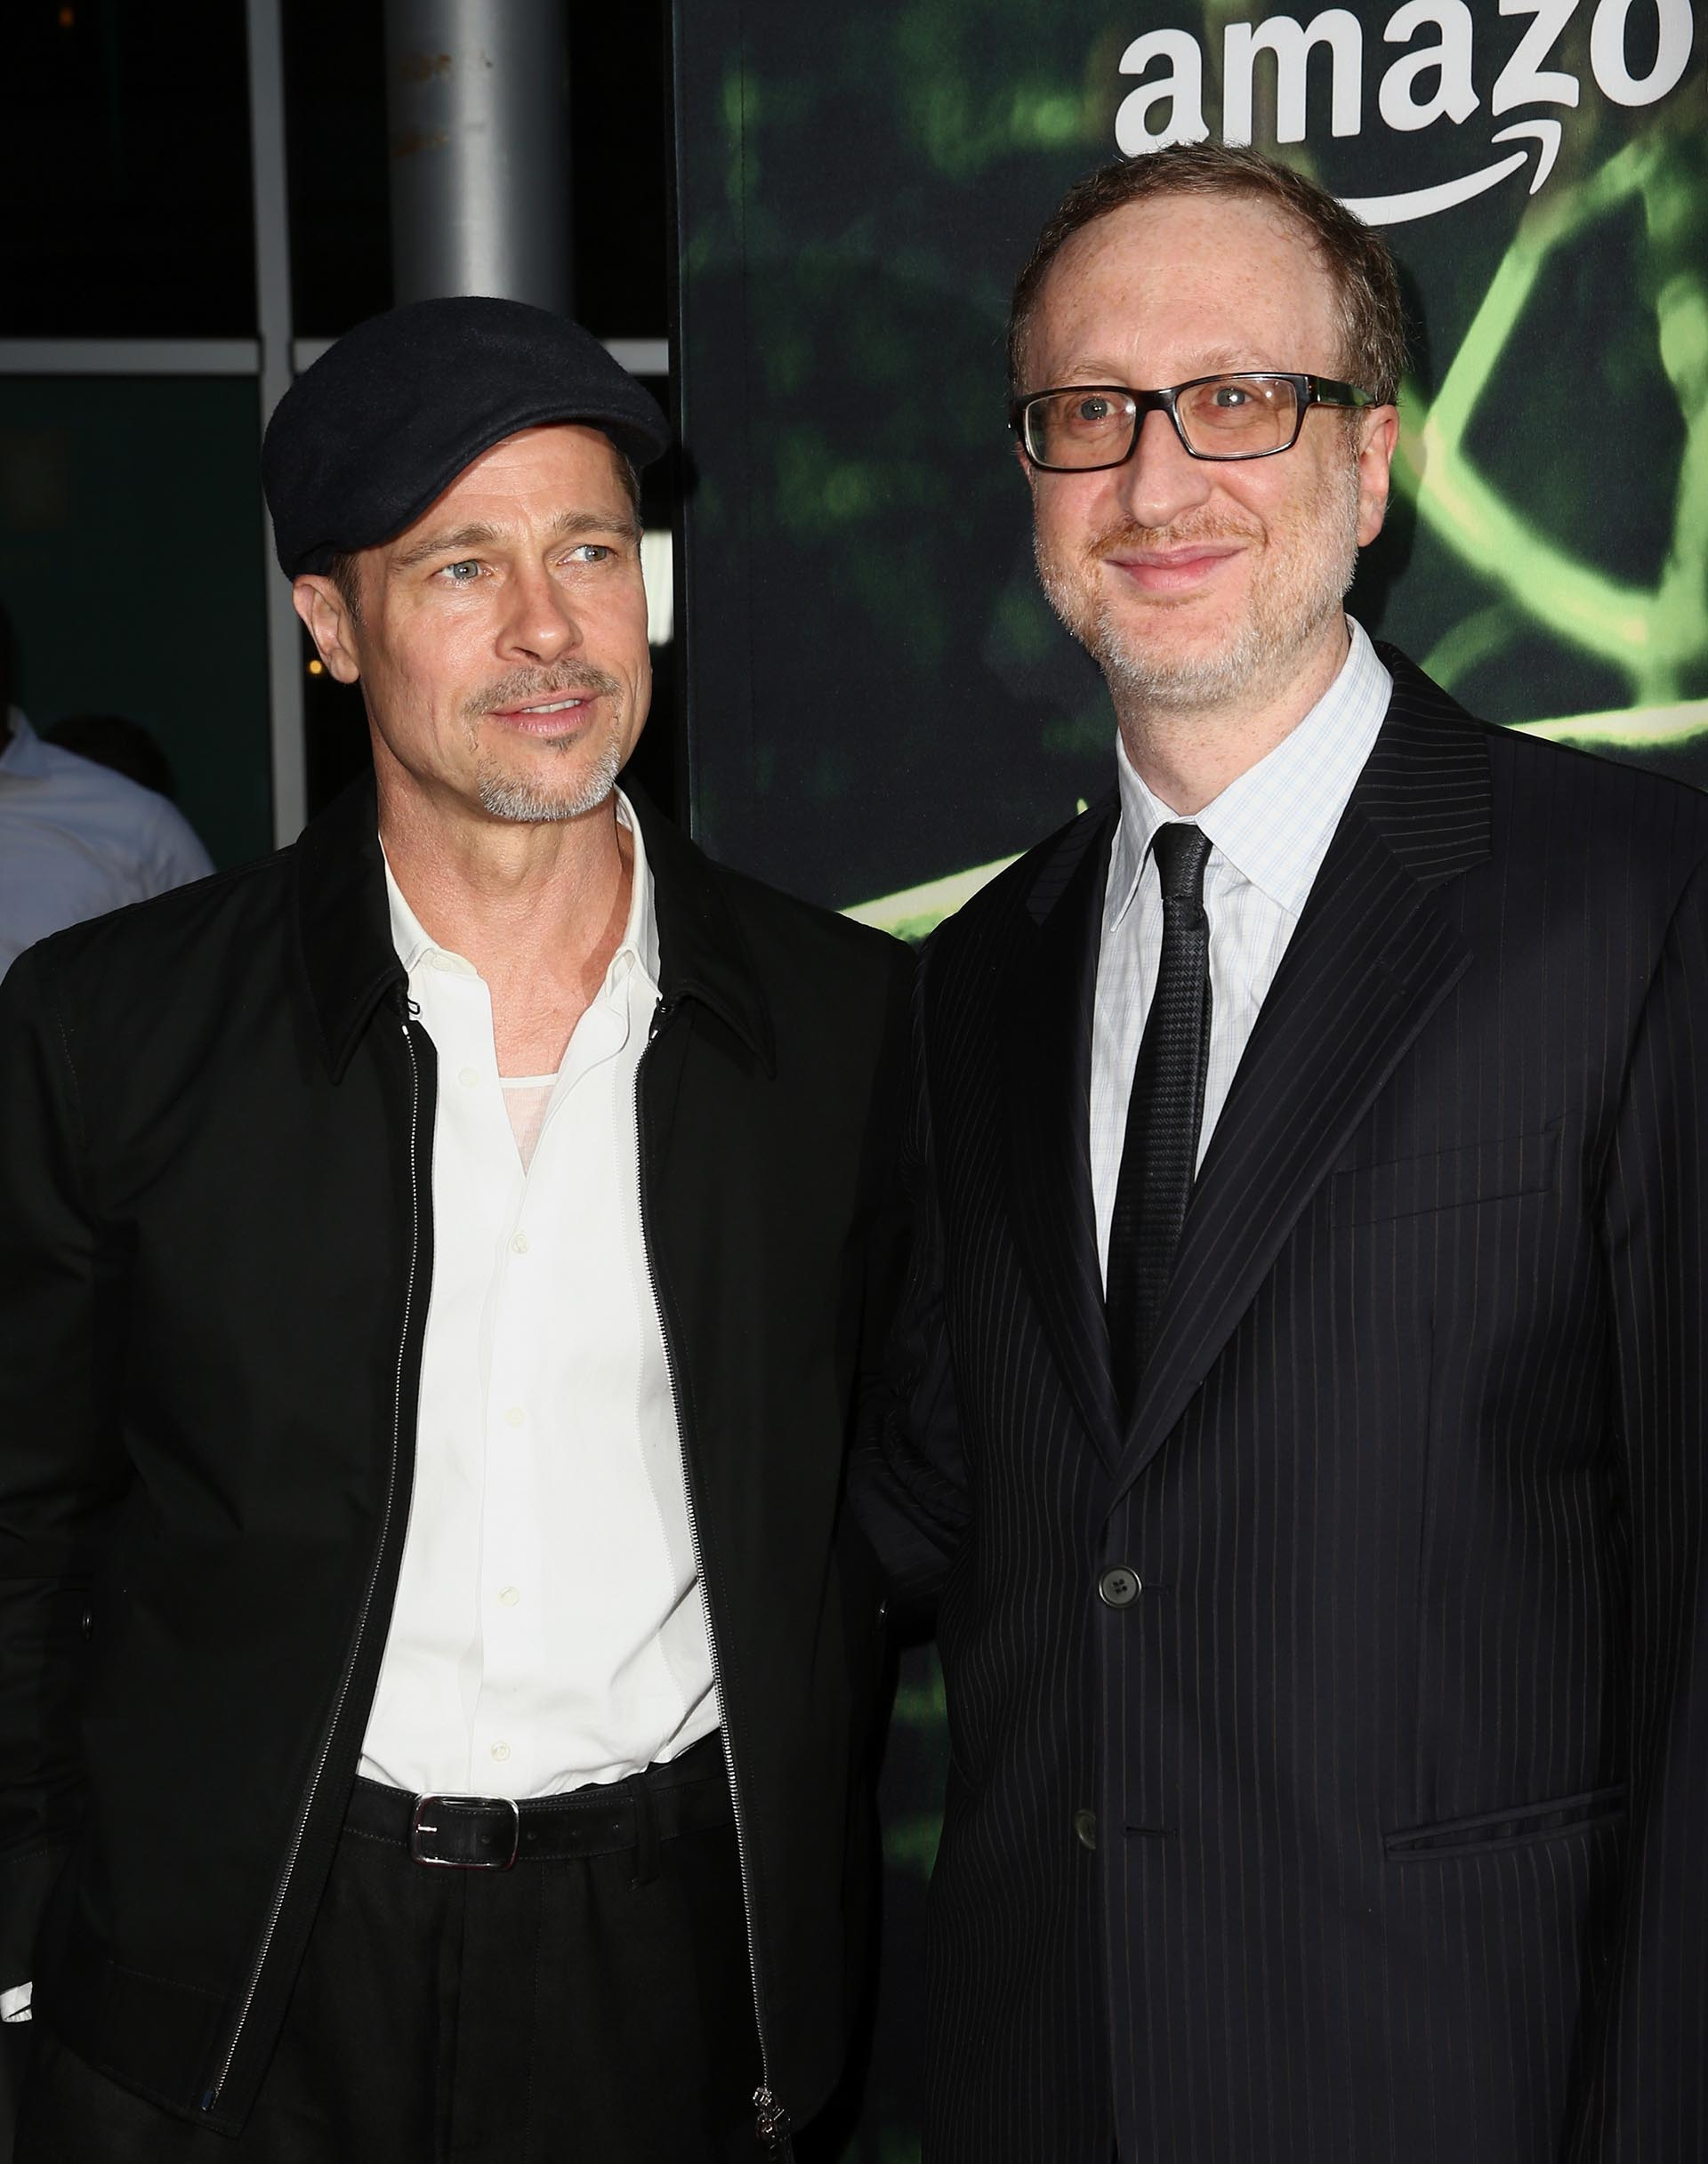 El productor ejecutivo de la película, Brad Pitt, junto al escritor, productor y director, James Gray /// Fotos: Getty Images – Reuters